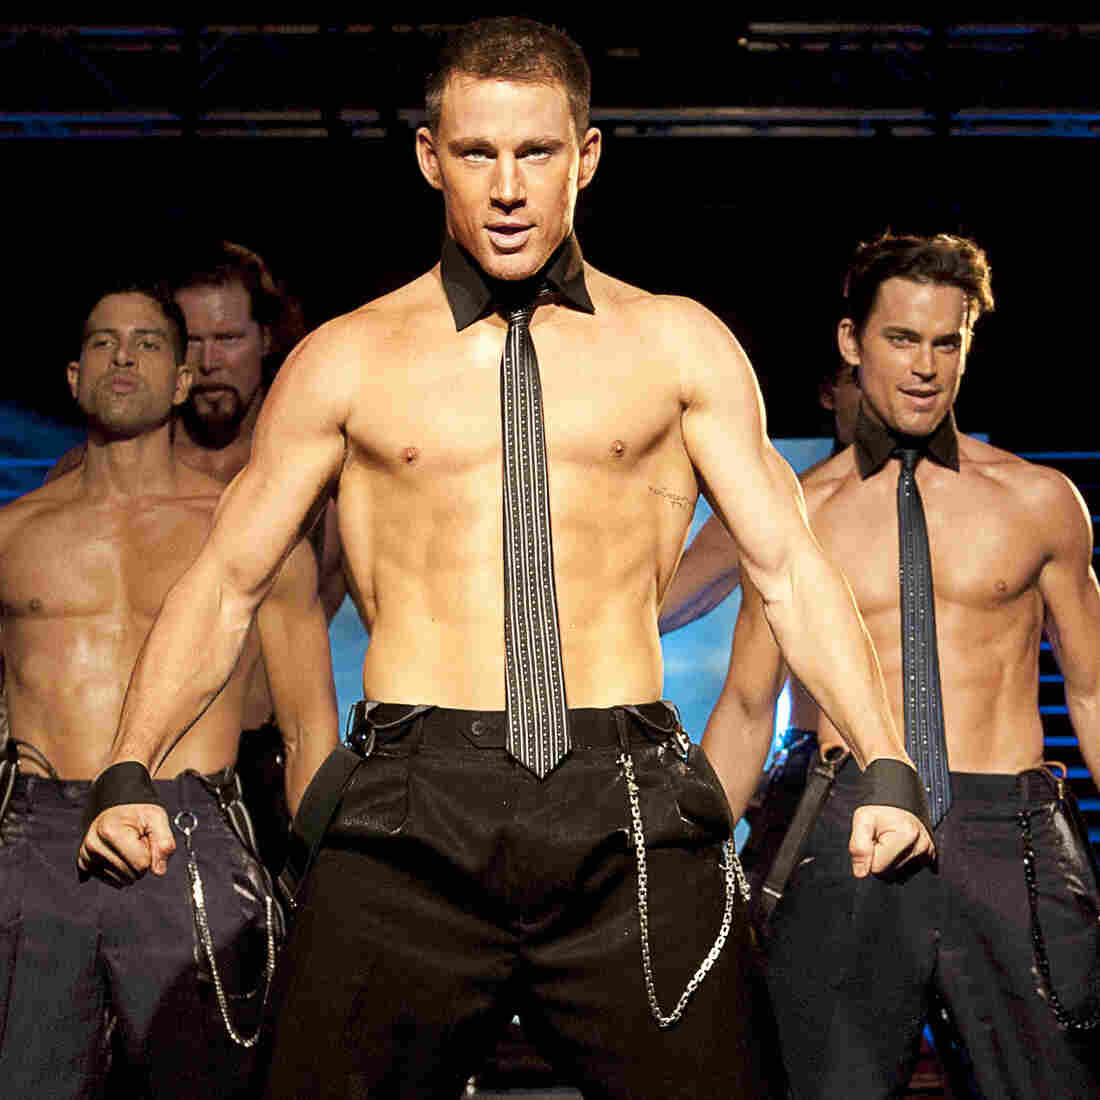 'Magic Mike': Flesh Aplenty, But More Than Skin Deep